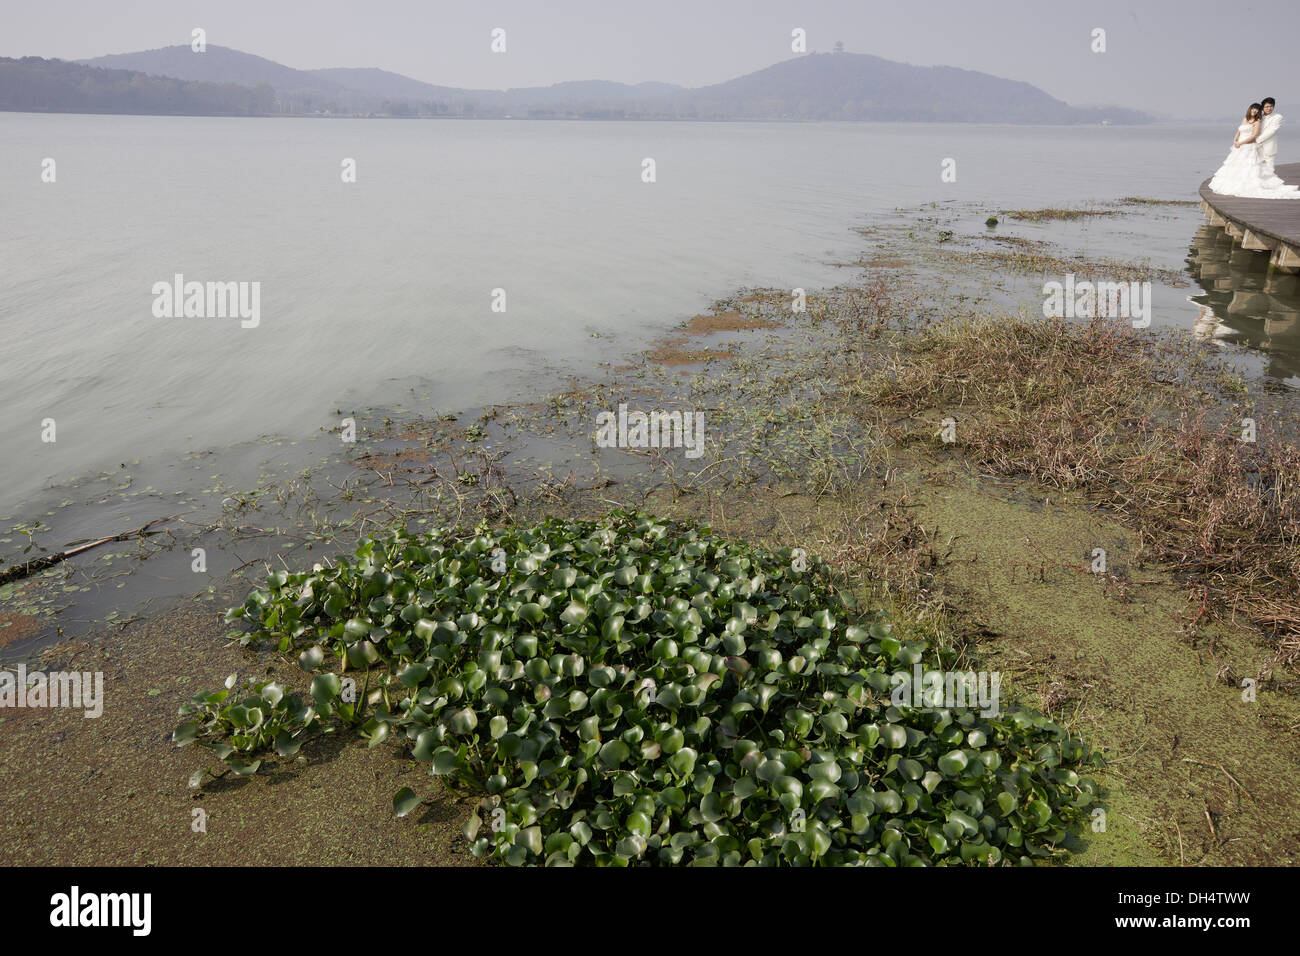 Taihu Lake, China which has in recent years had high nitrogen levels due to fertilizer runoff and development. - Stock Image